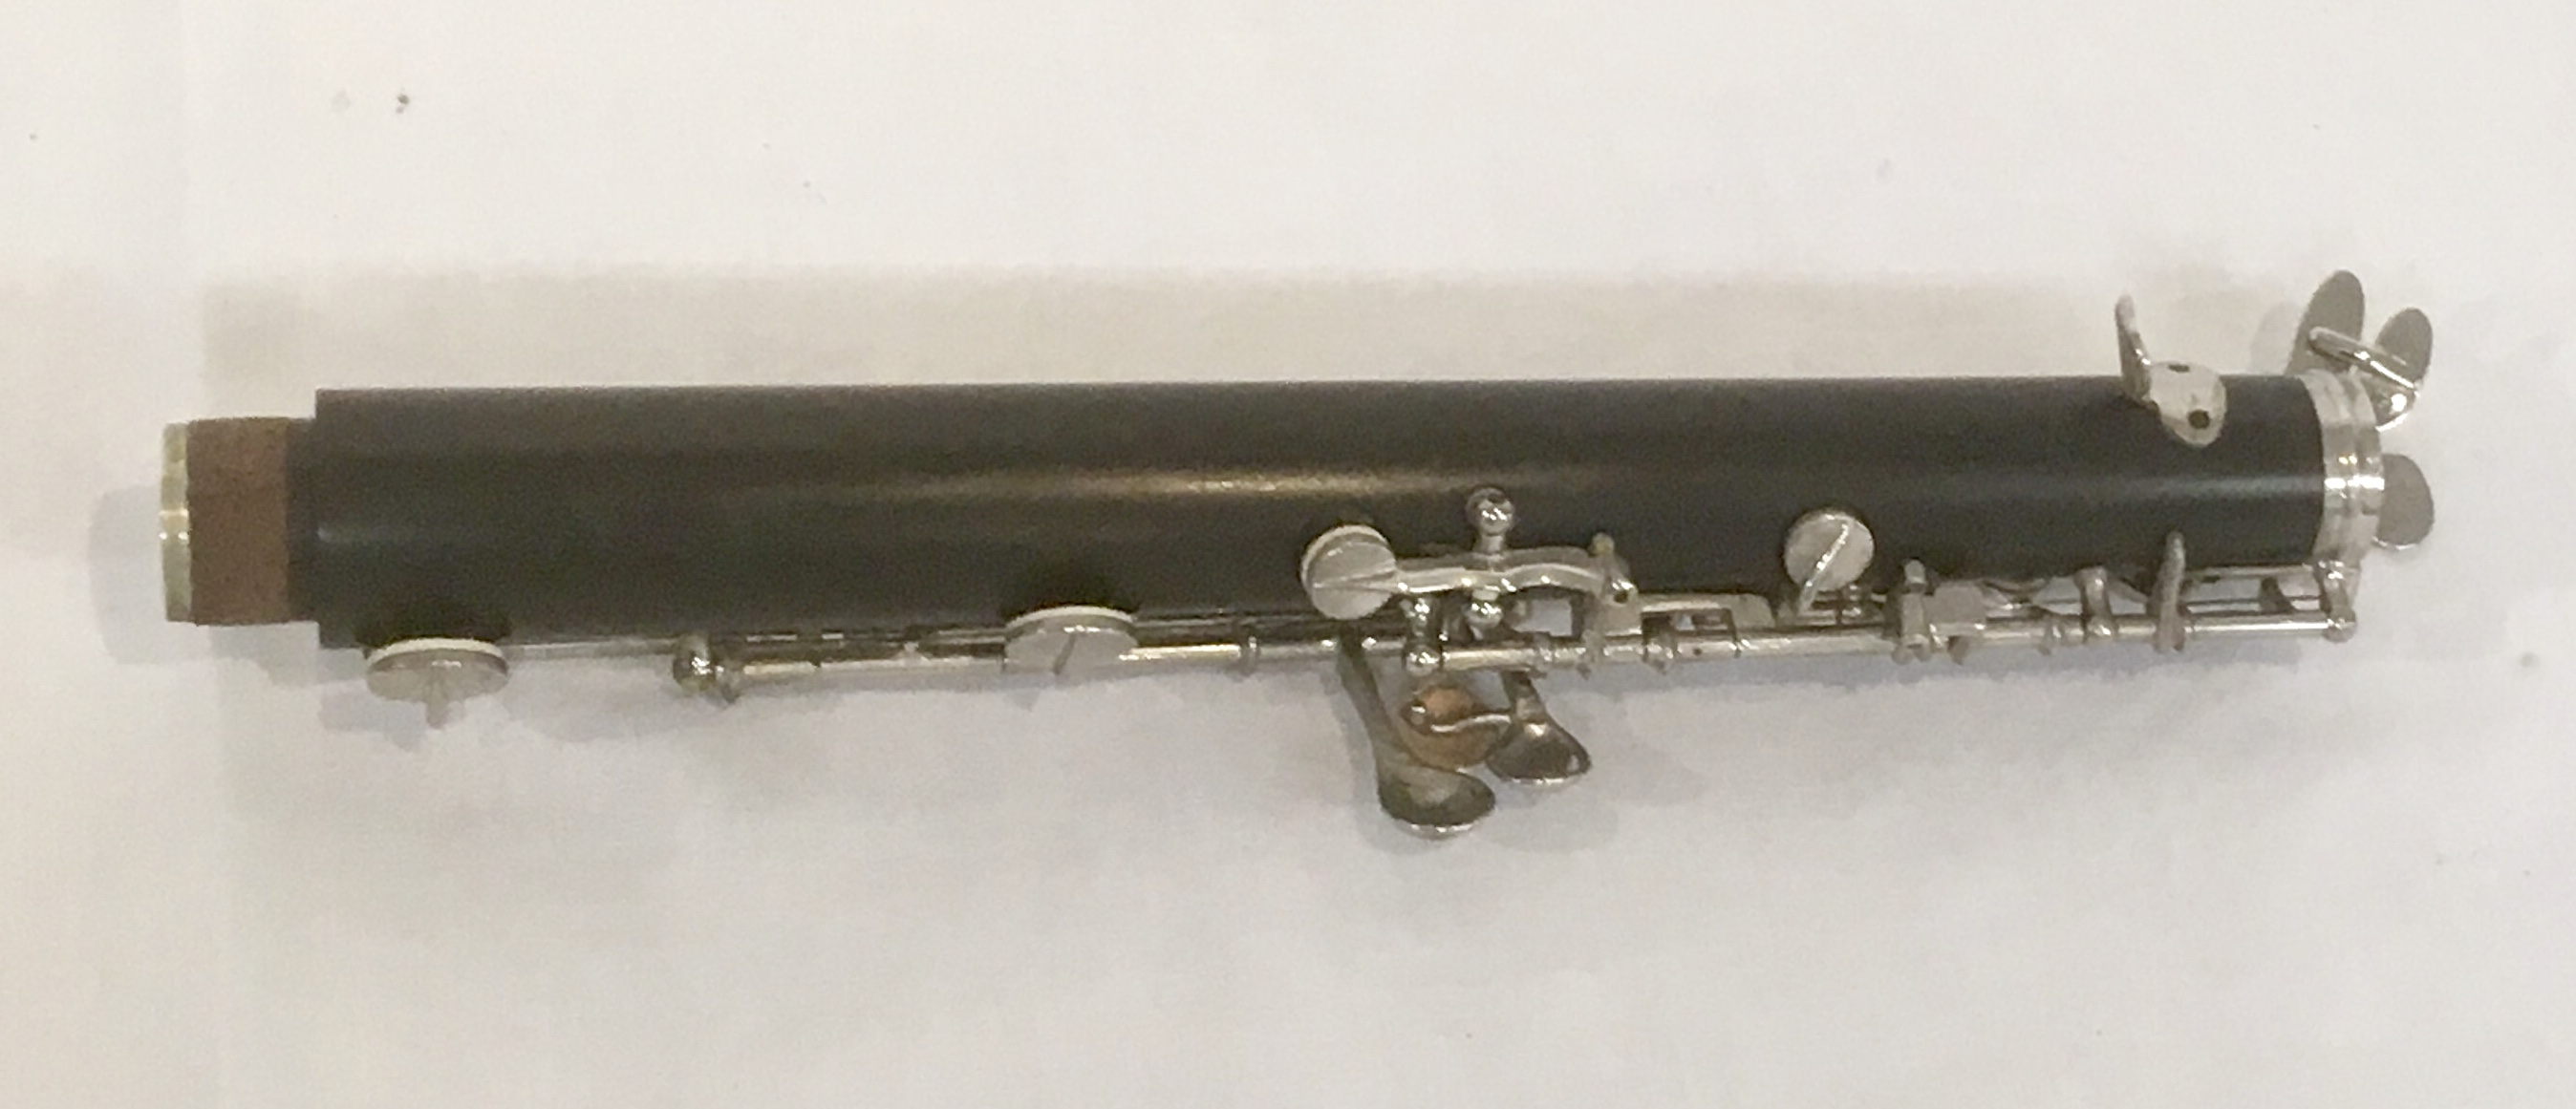 Lot 175 - Howarth S2 ebony oboe with thumbplate and semi automatic octaves, manufactured January 1954 with